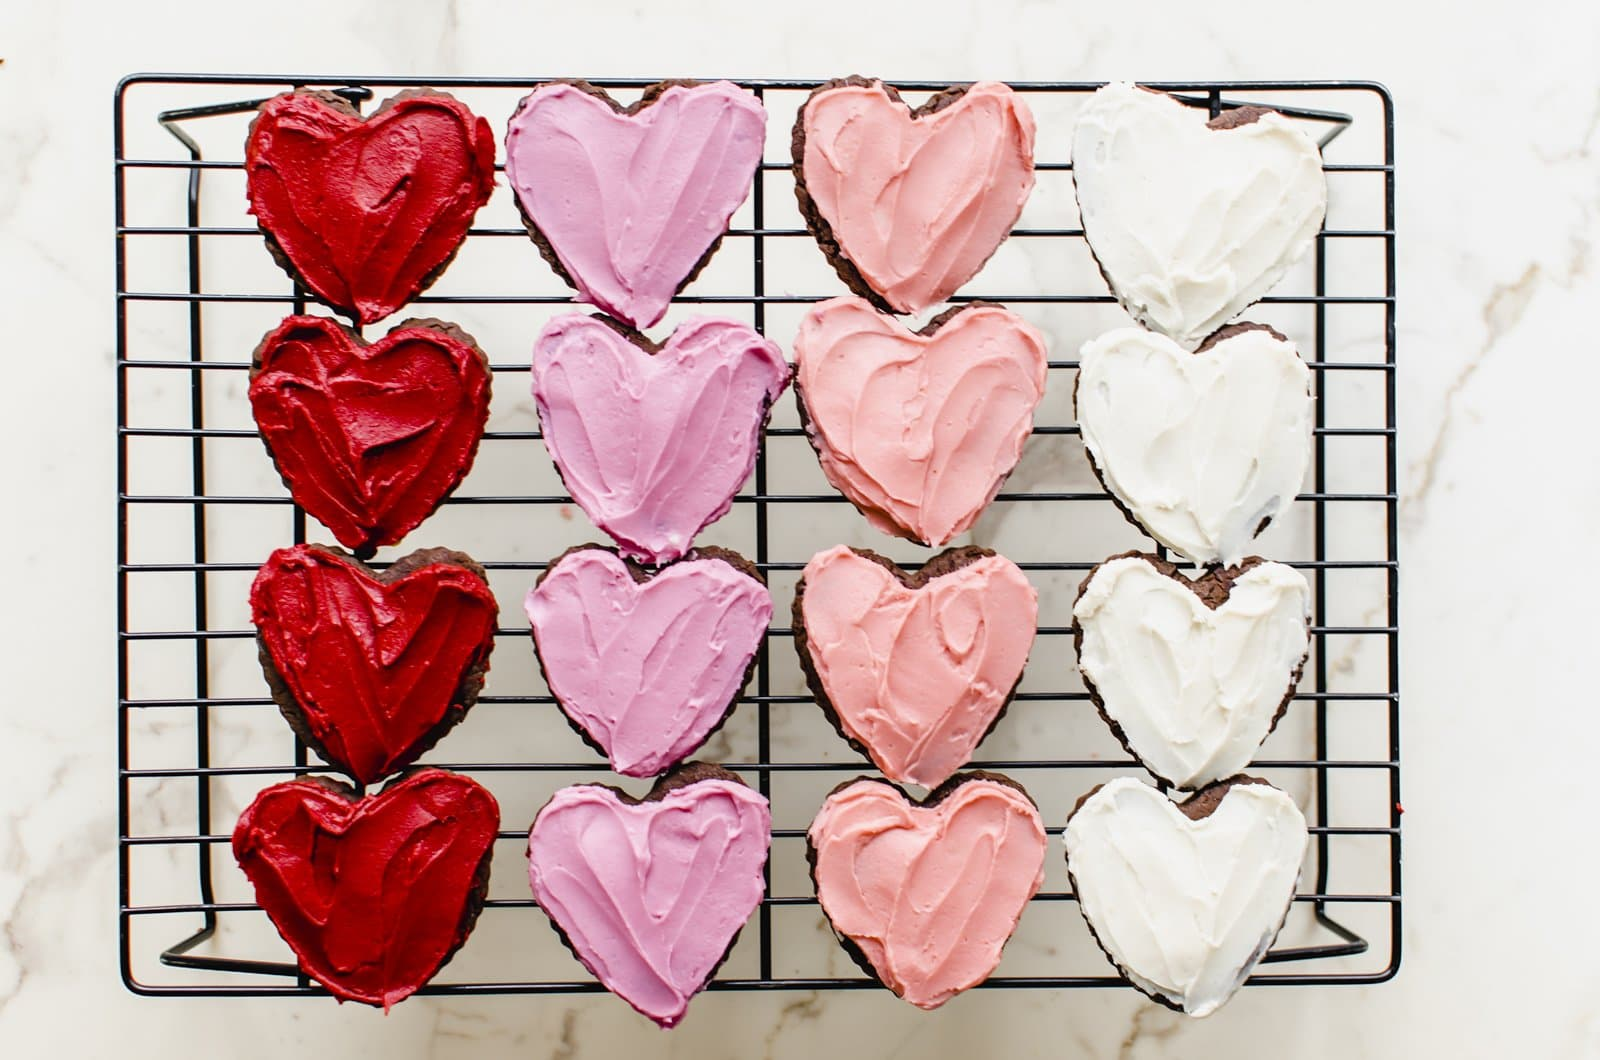 Rose of red, pink, peach and white frosted cutout cookies on a wire baking rack.